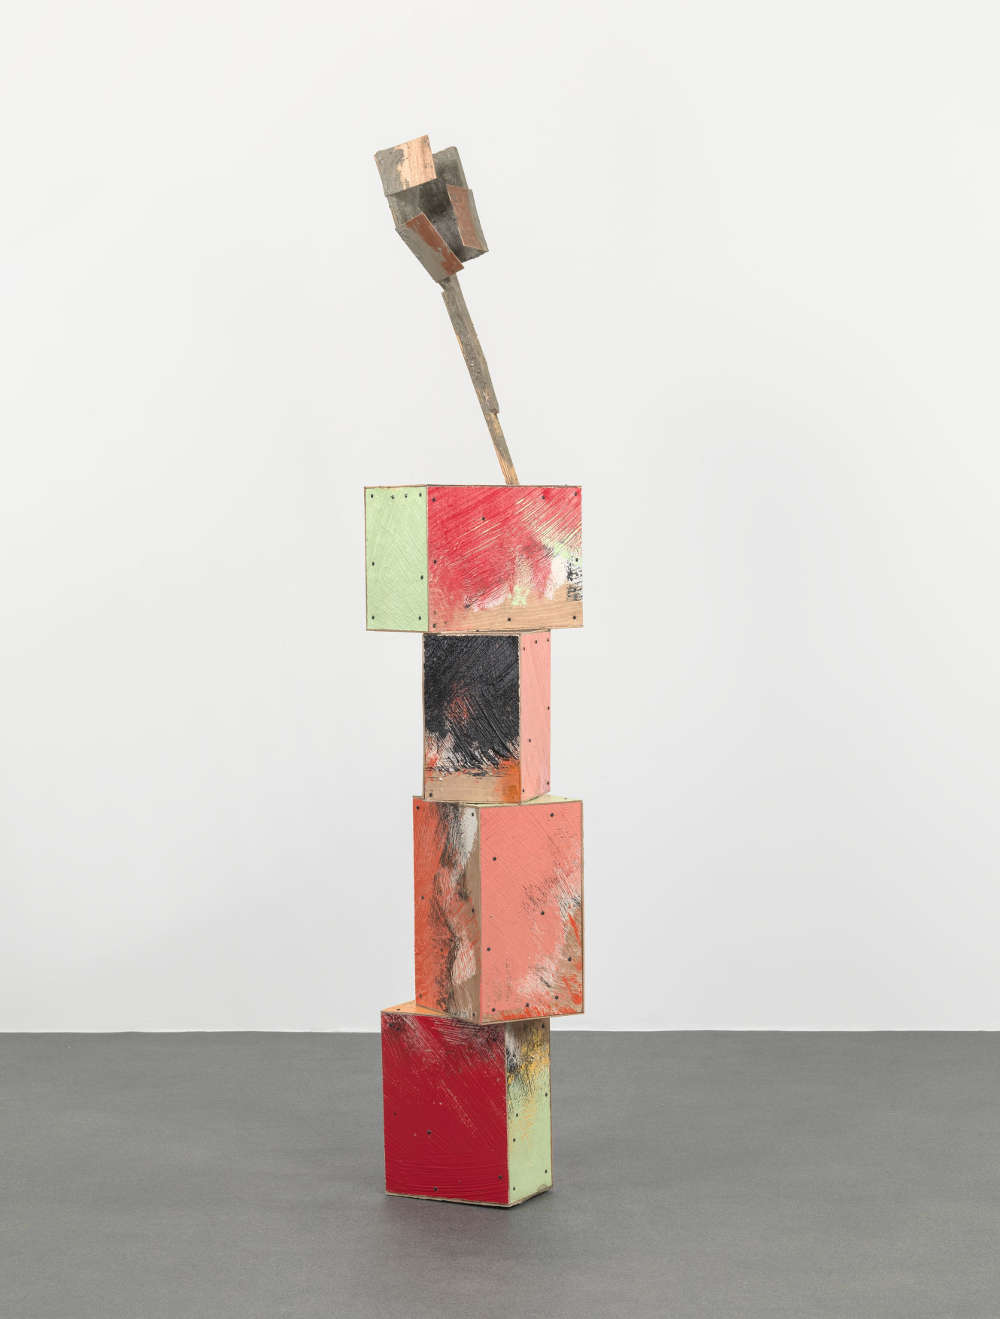 Phyllida Barlow, untitled: folded hoarding, 2018. Concrete, cement, filler, PVA, paint, plywood, sand, spray paint, steel, timber 237 x 47 x 40 cm / 93 1/4 x 18 1/2 x 15 3/4 in. © Phyllida Barlow. Courtesy the artist and Hauser & Wirth. Photo: Alex Delfanne